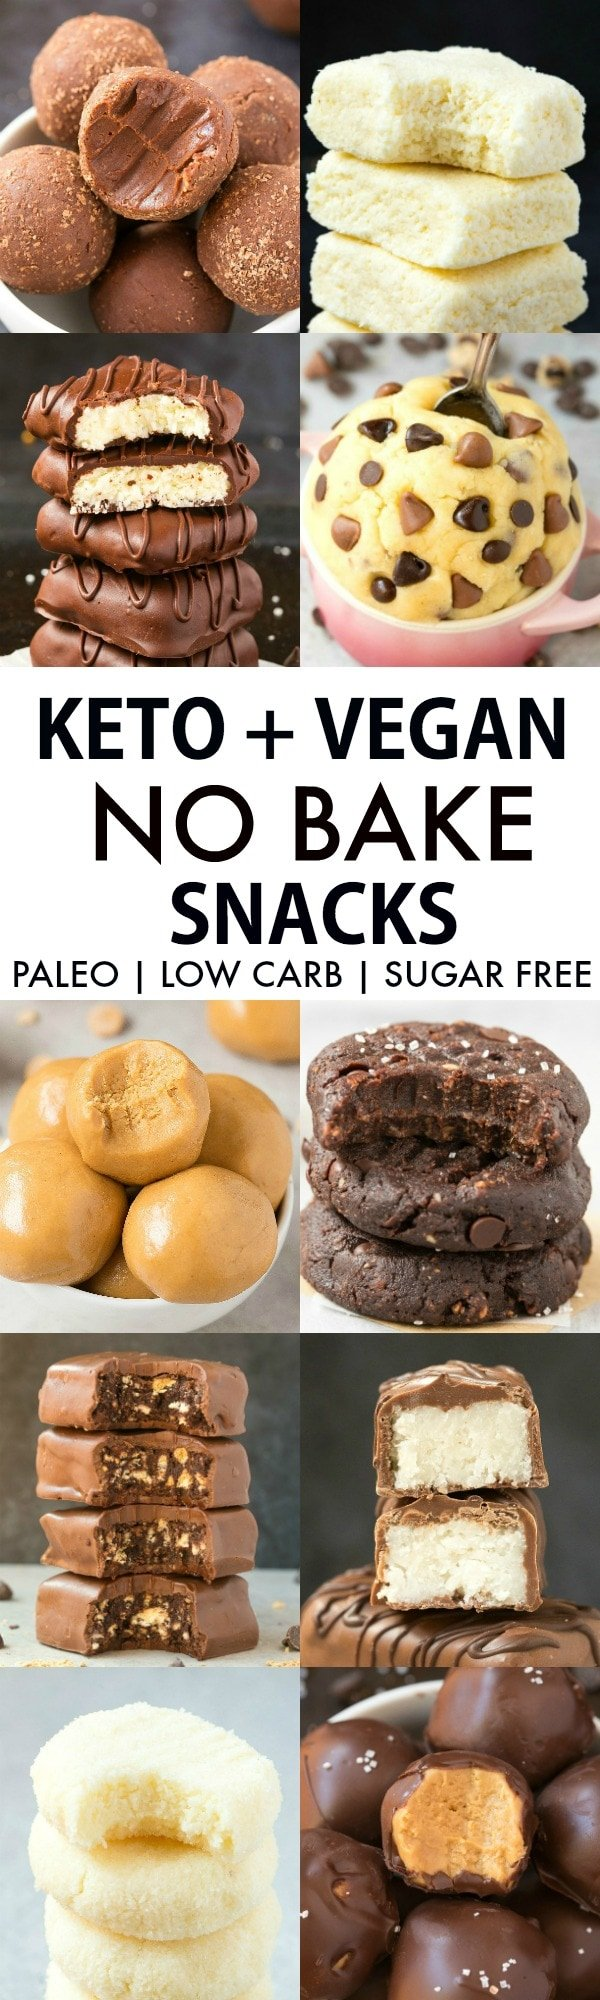 Easy Keto and Vegan No Bake Snacks in a collage